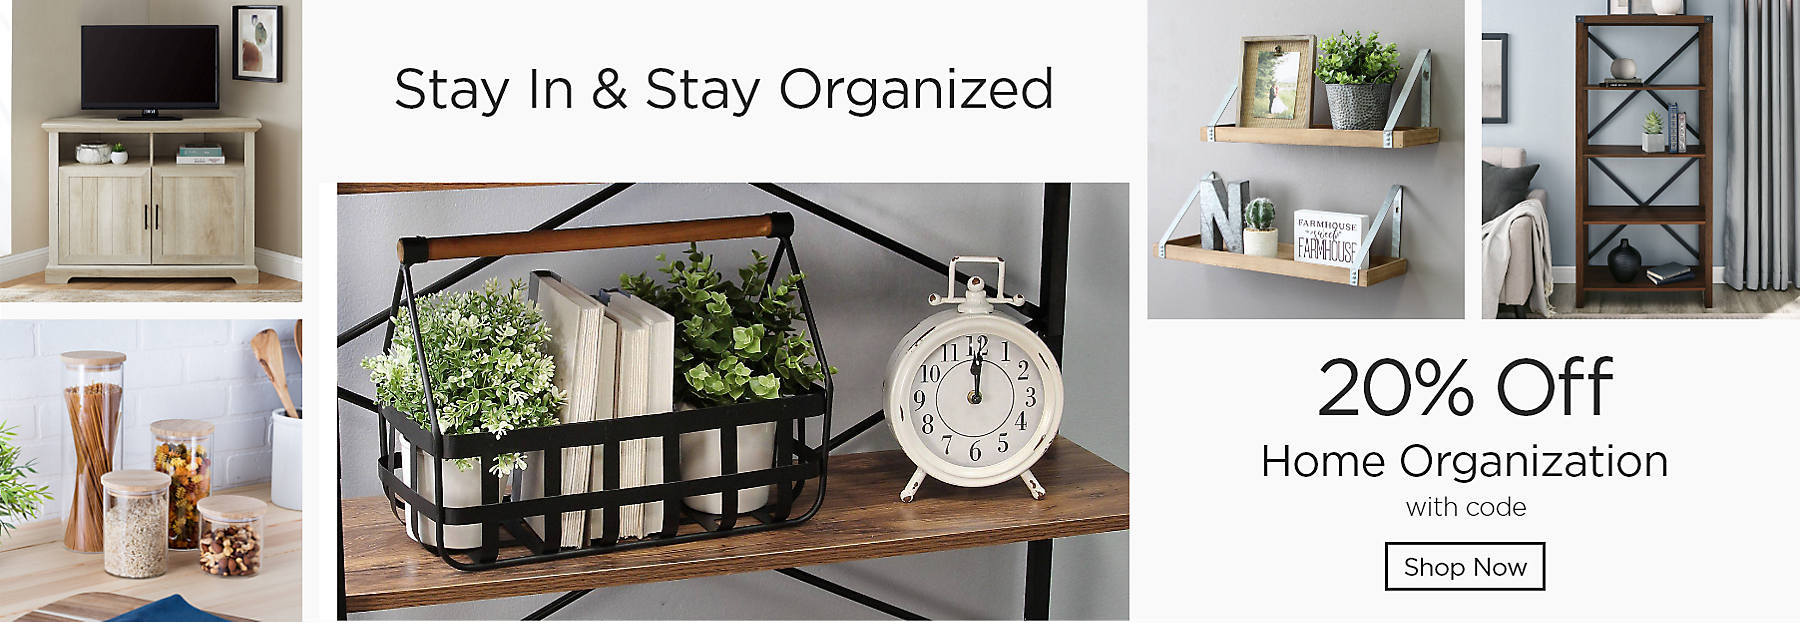 Stay In & Stay Organized 20% Off Home Organization with code Shop Now